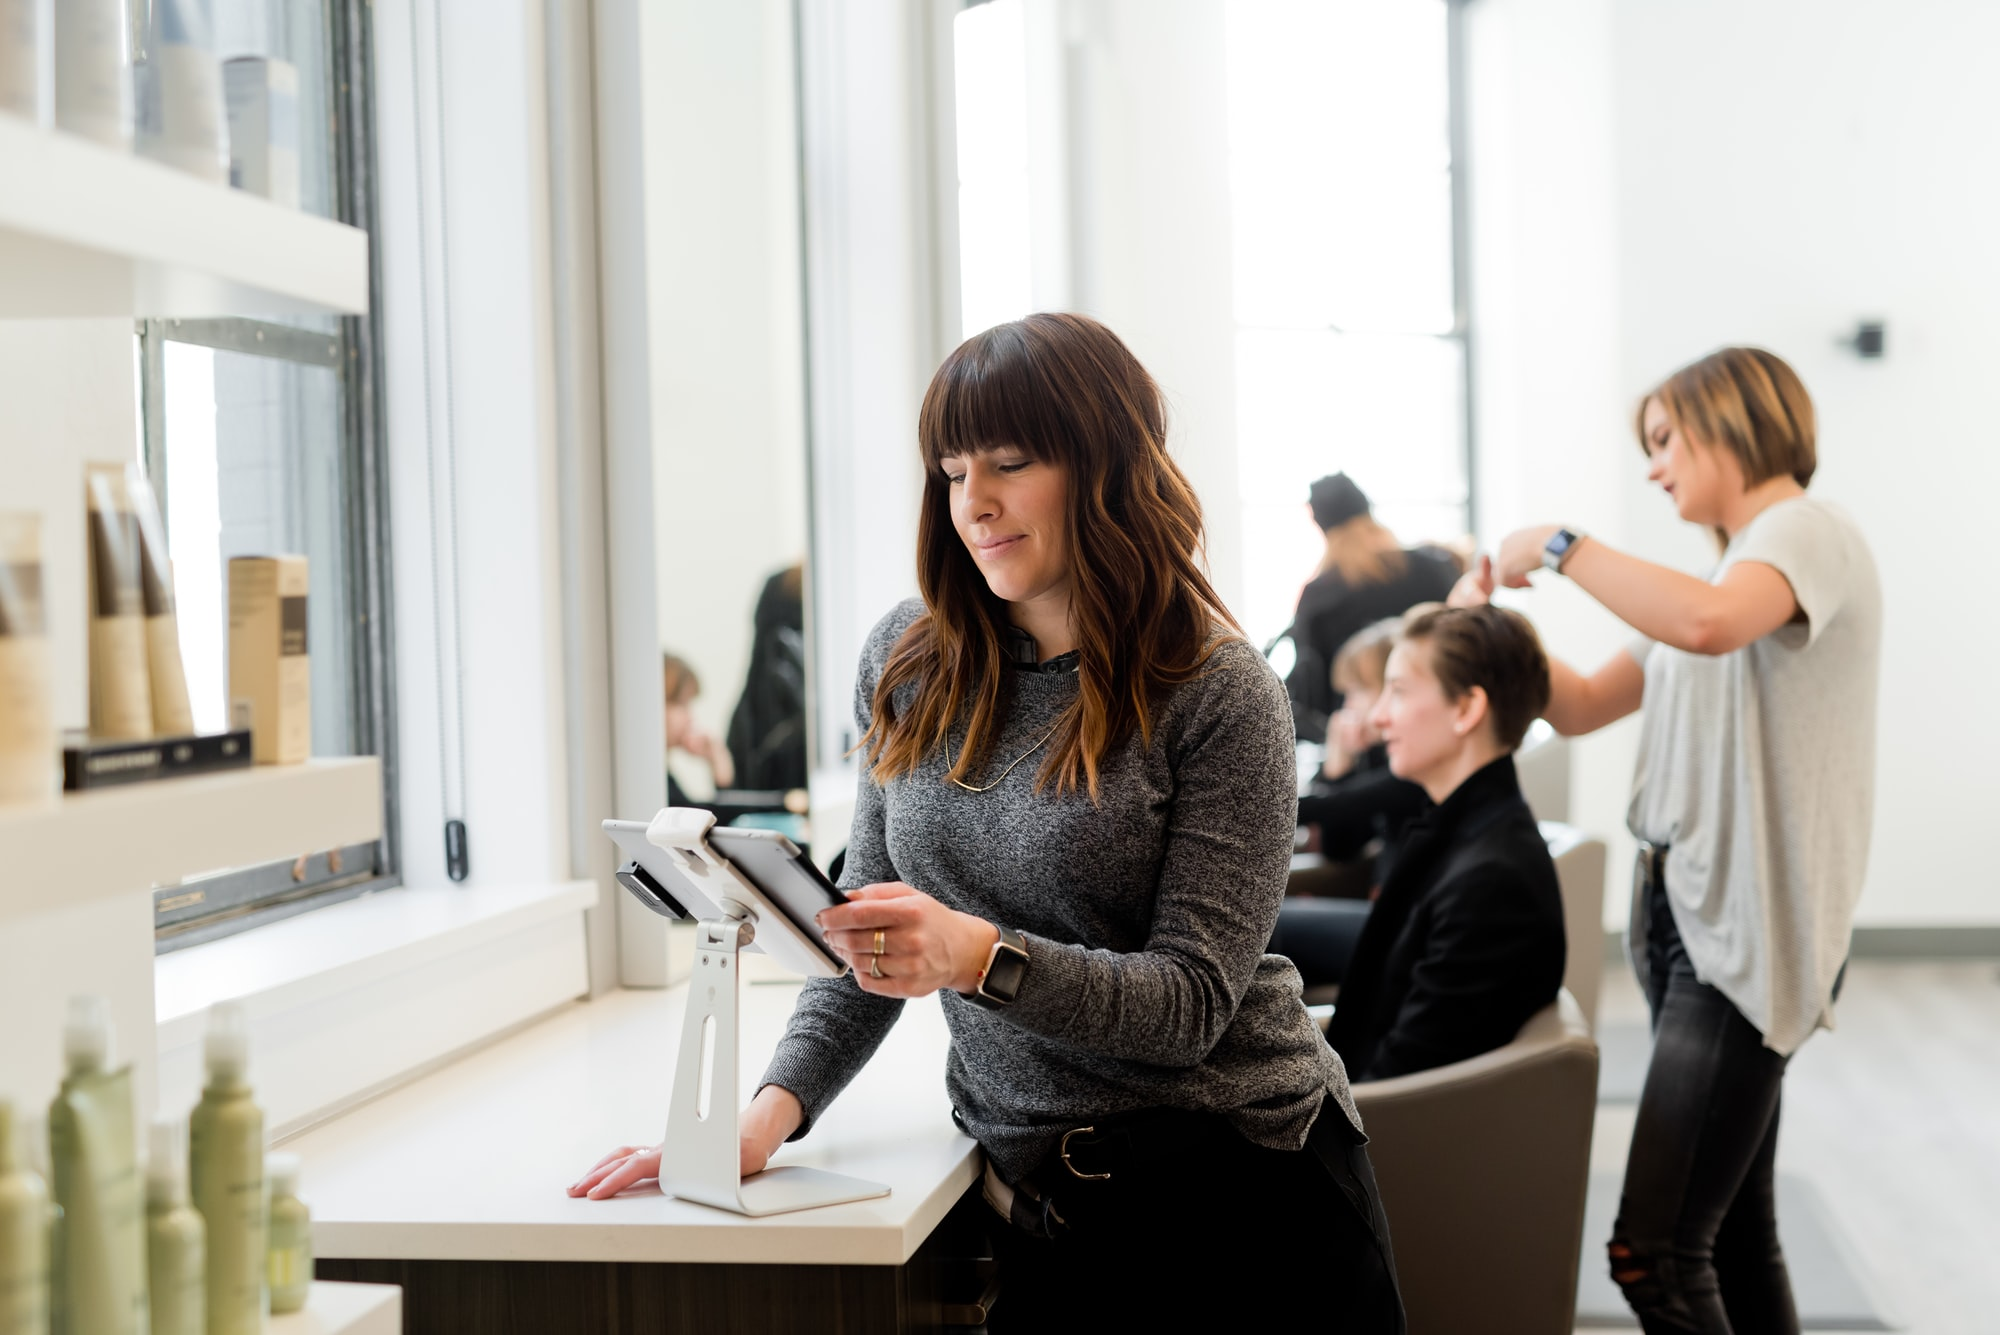 Woman looking at tablet in a salon. Business owner, female entrepreneur.    Kulør Hair Design and Color Studio is the best place for hair styling, located at 22 East Center Street in Logan, Utah.  https://www.instagram.com/kulorsalon/ https://www.kulorsalon.com/ 435-213-9075 https://www.aveda.com/salon/KulorSalon  https://www.instagram.com/AwCreativeUT/ https://www.AwCreativeUT.com/ #AwCreativeUT #awcreative #AdamWinger